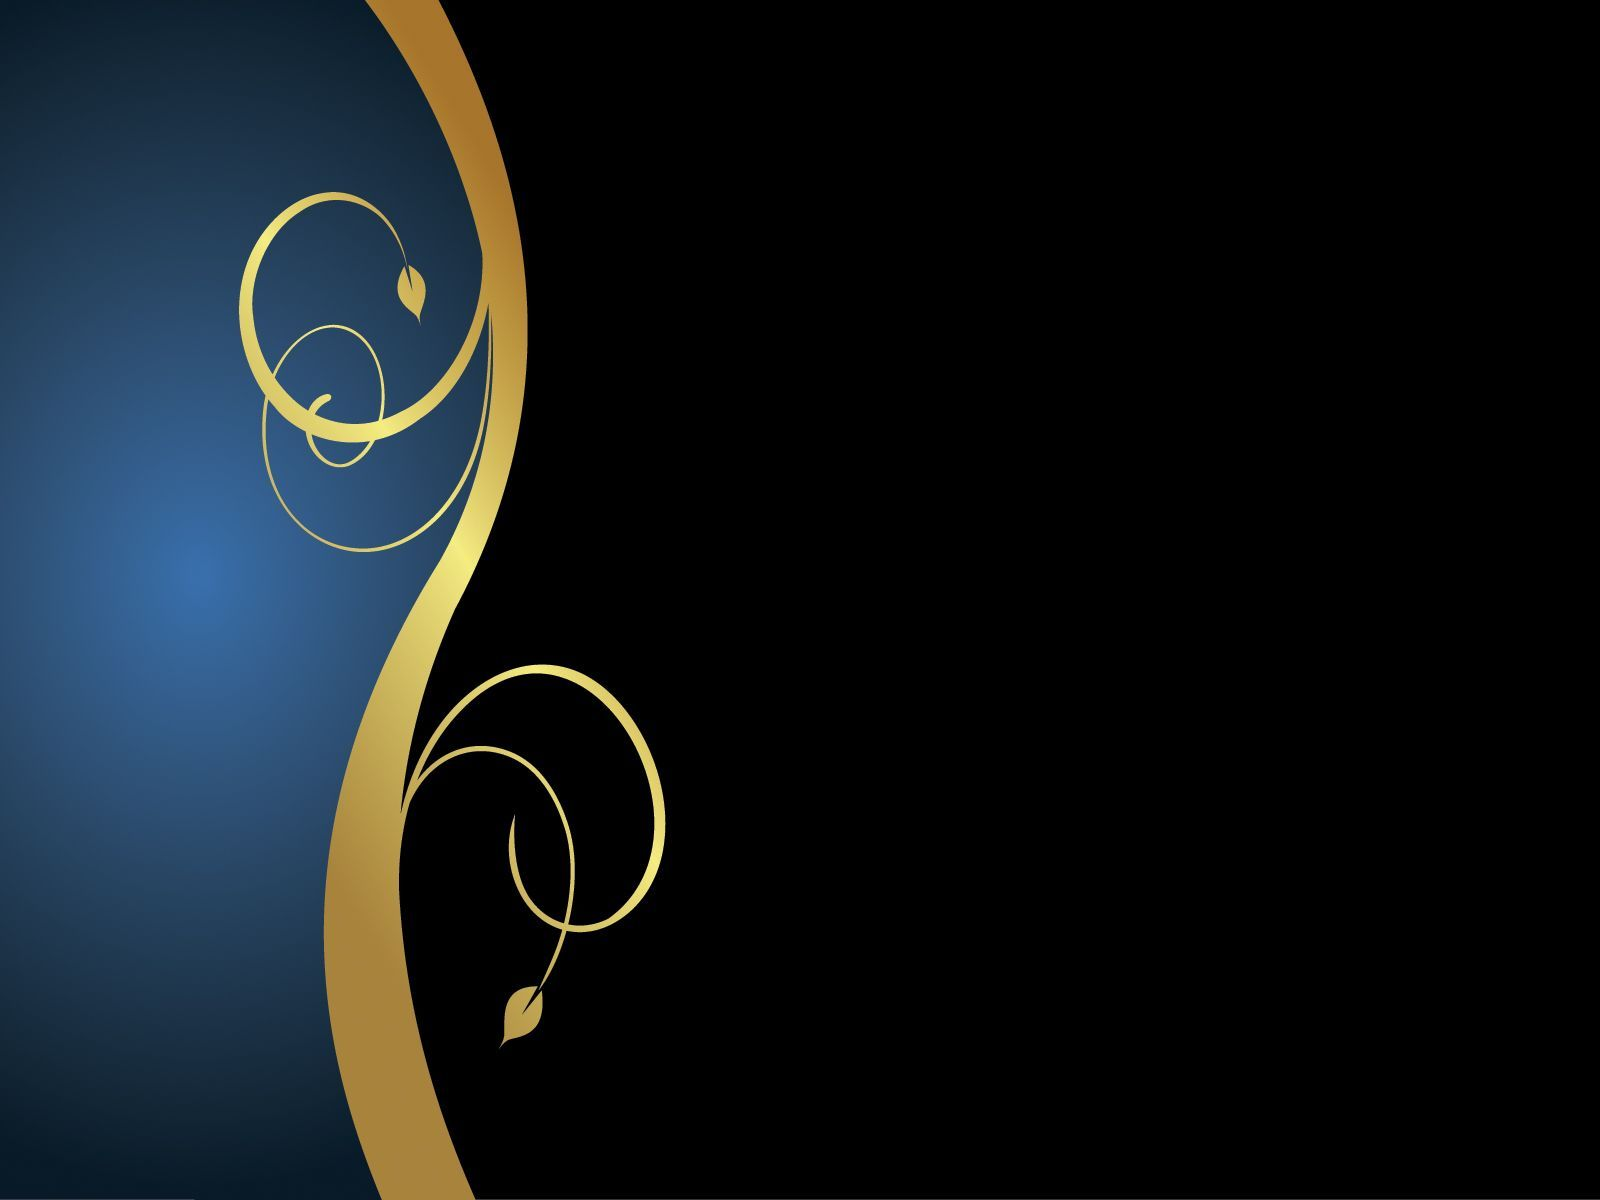 Life Quotes Wallpapers For Facebook Download Black And Gold Abstract Wallpaper Gallery